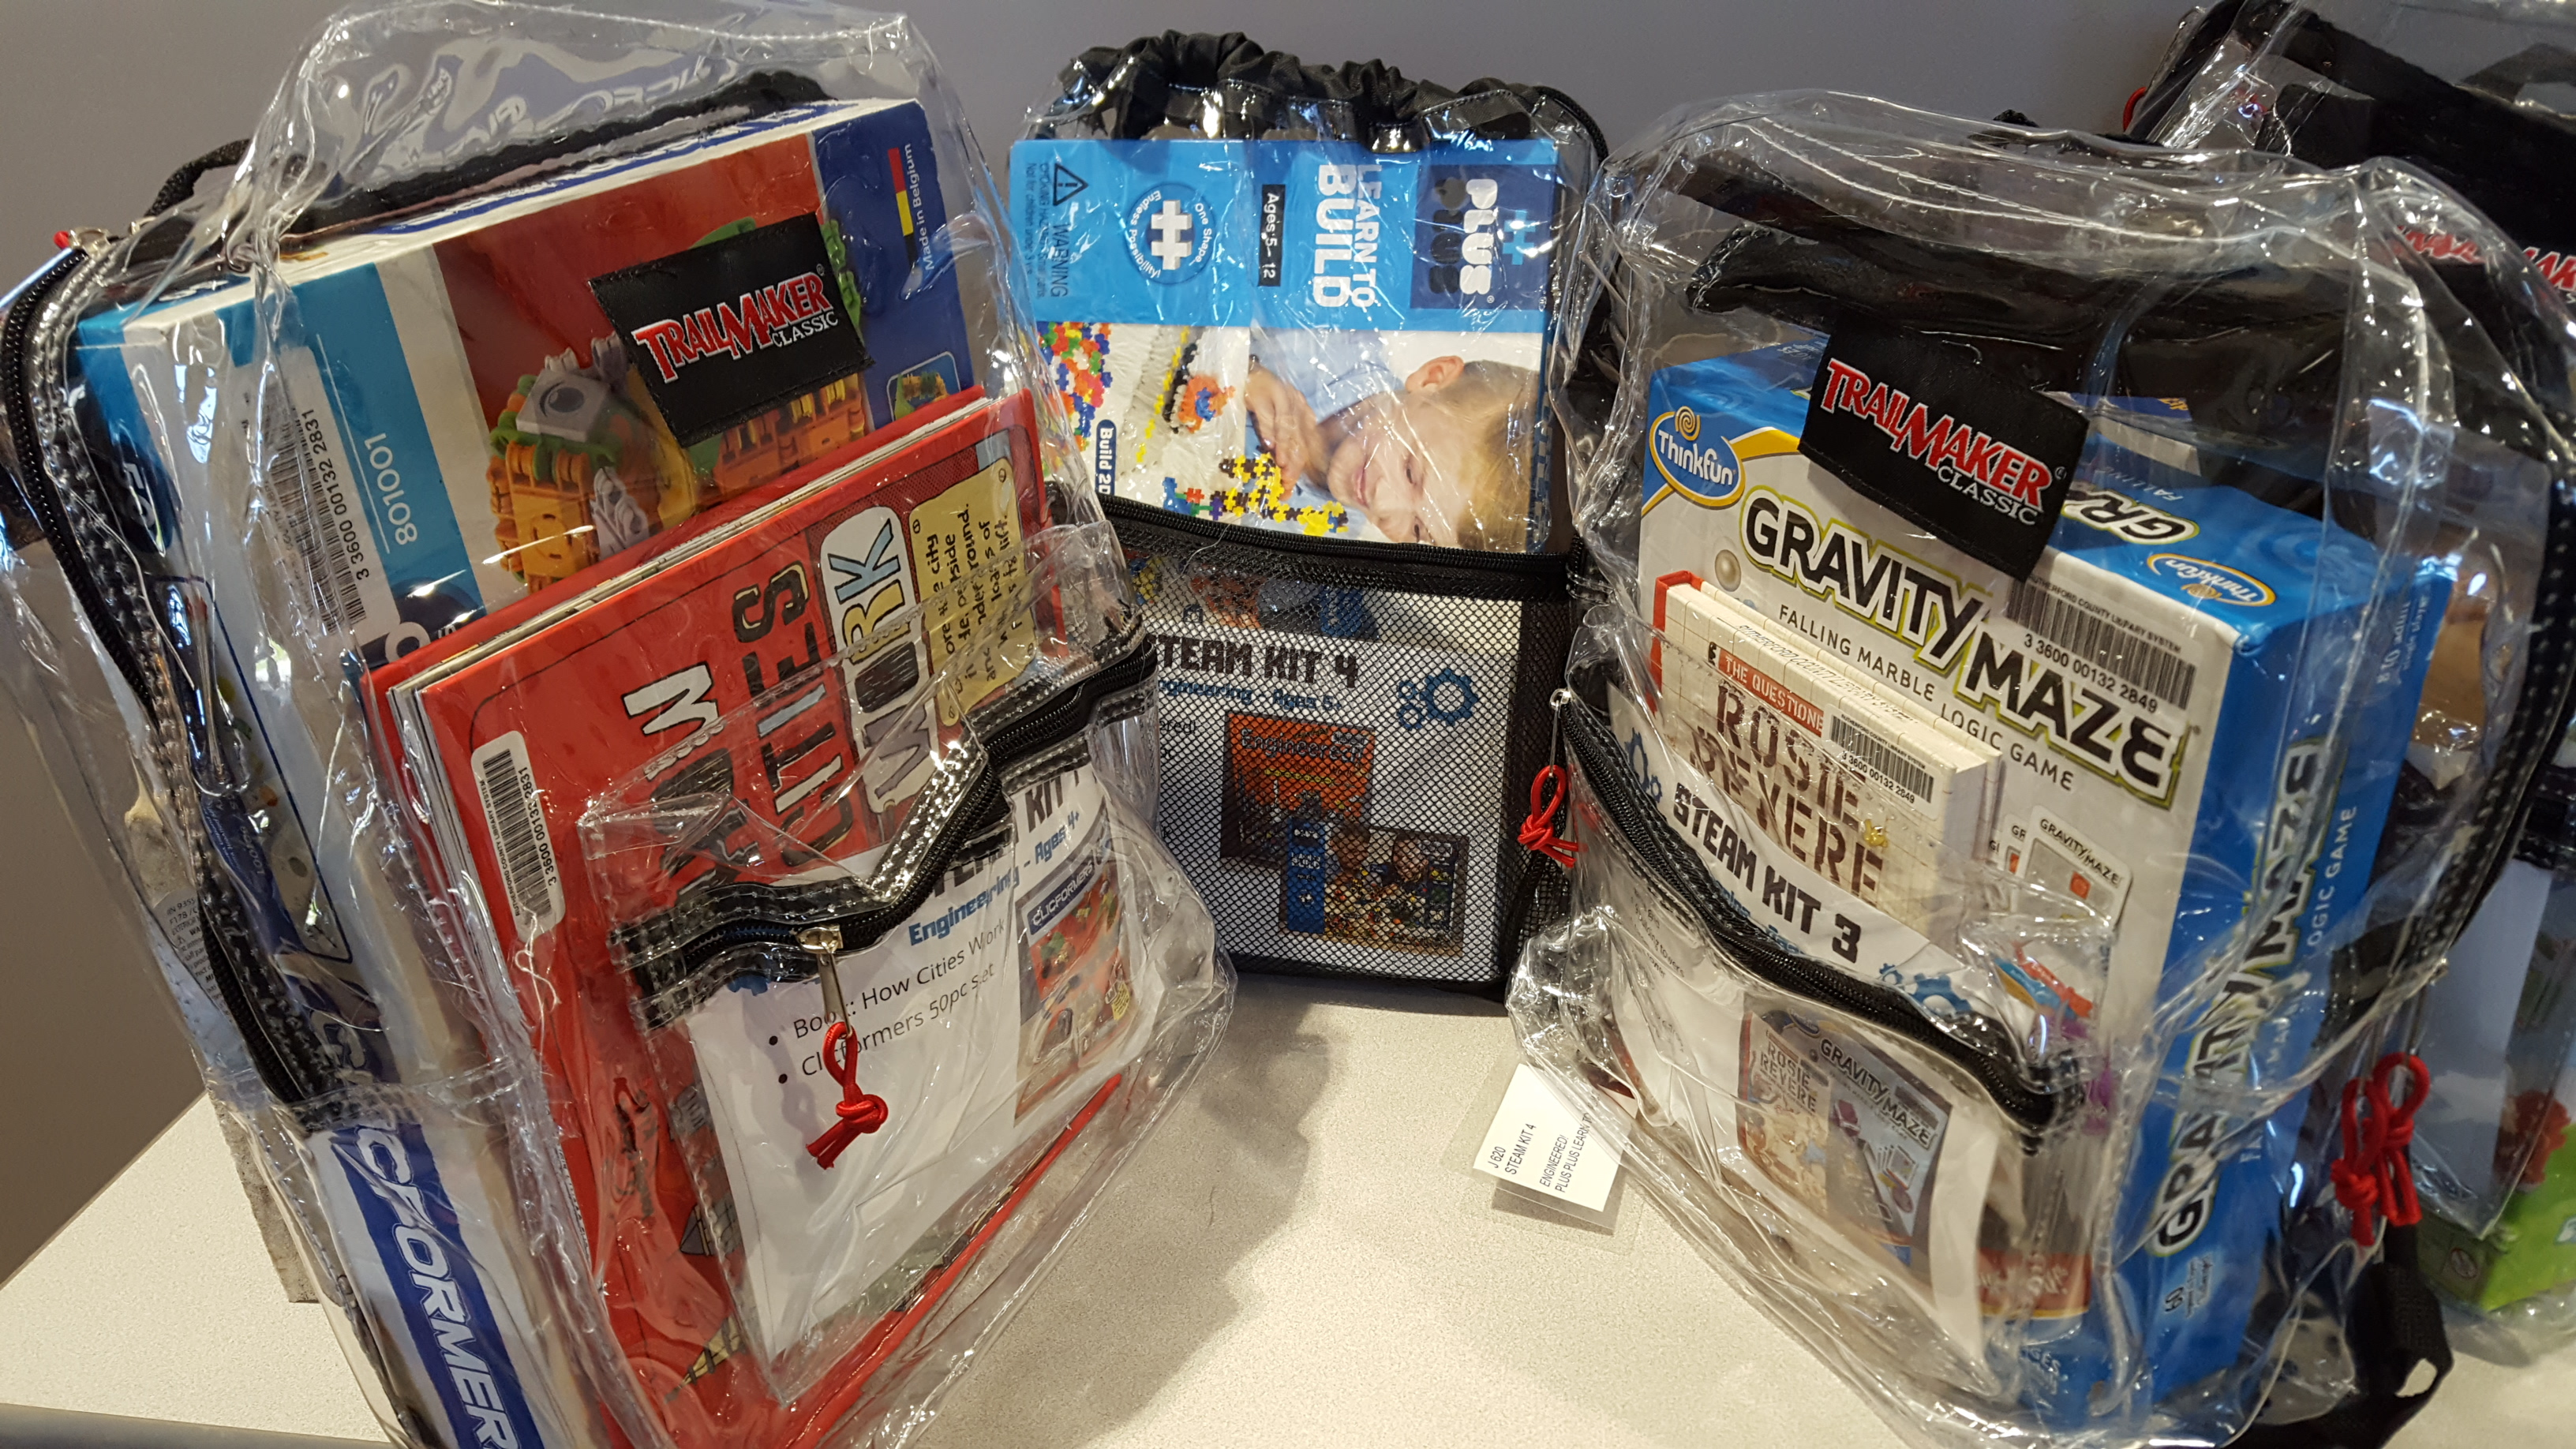 STEAM Kits now available to check out at the Technology Engagement Center